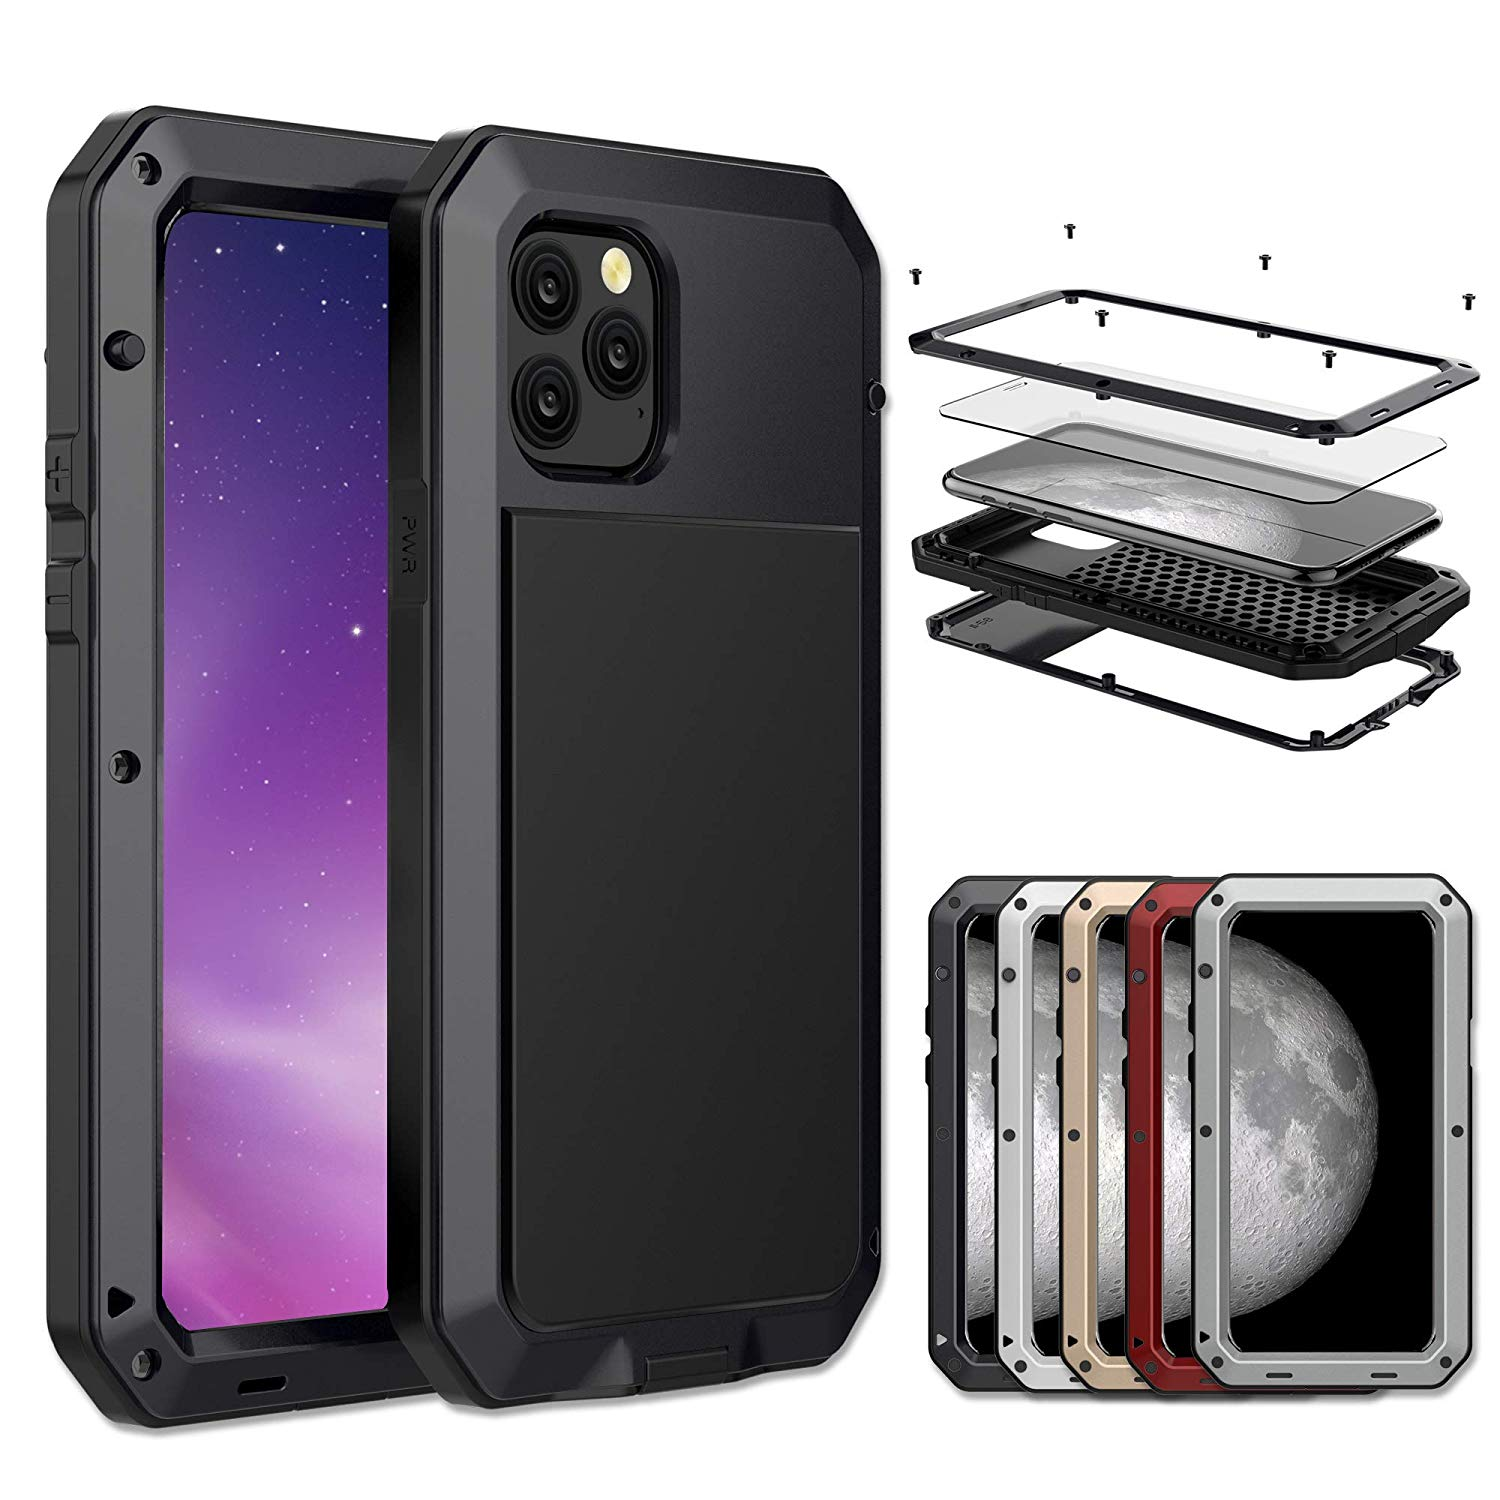 Gorilla Glass Aluminum Alloy Heavy Duty Shockproof Case Apple iPhone 11, 11 Pro or 11 Pro Max